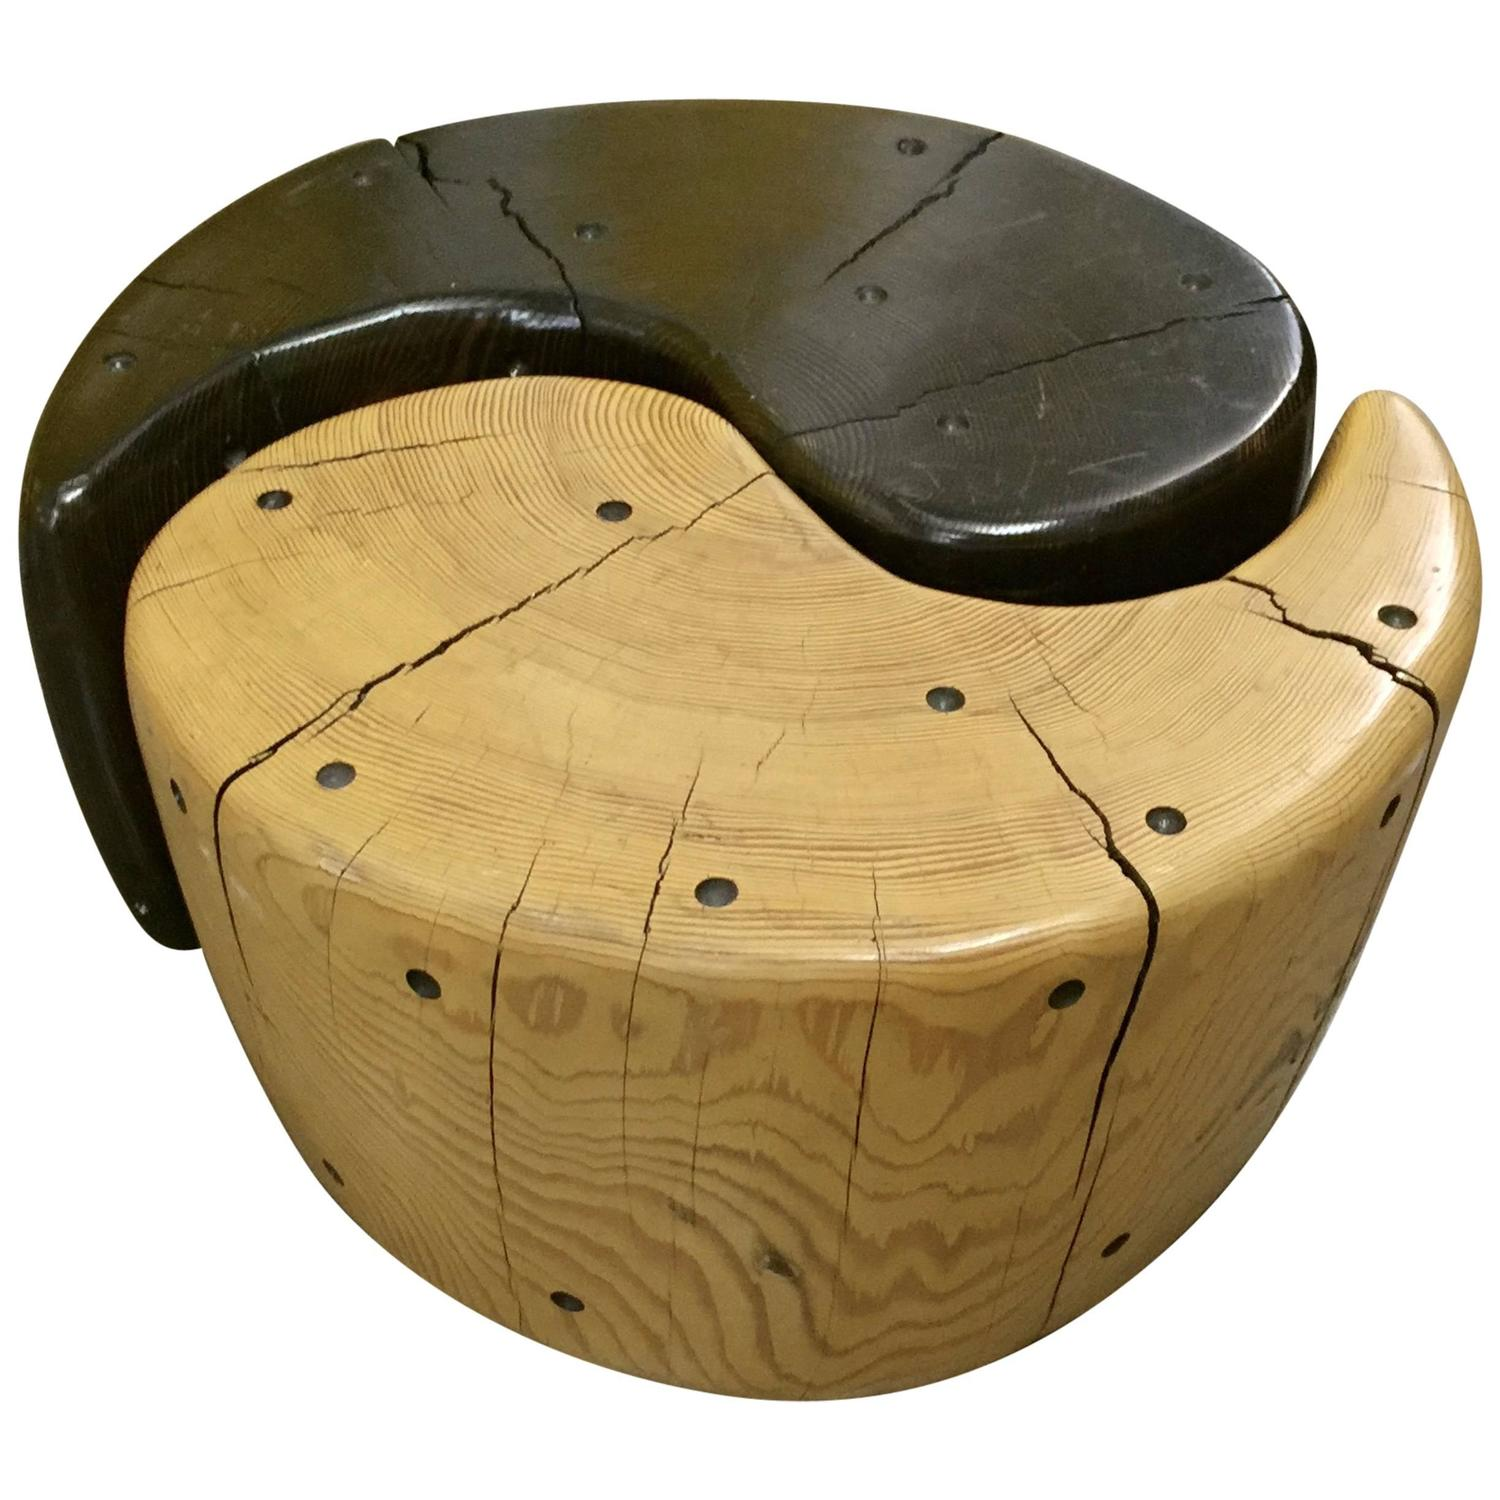 Yin yang table by noted california artist daniel pollock for Table yin yang